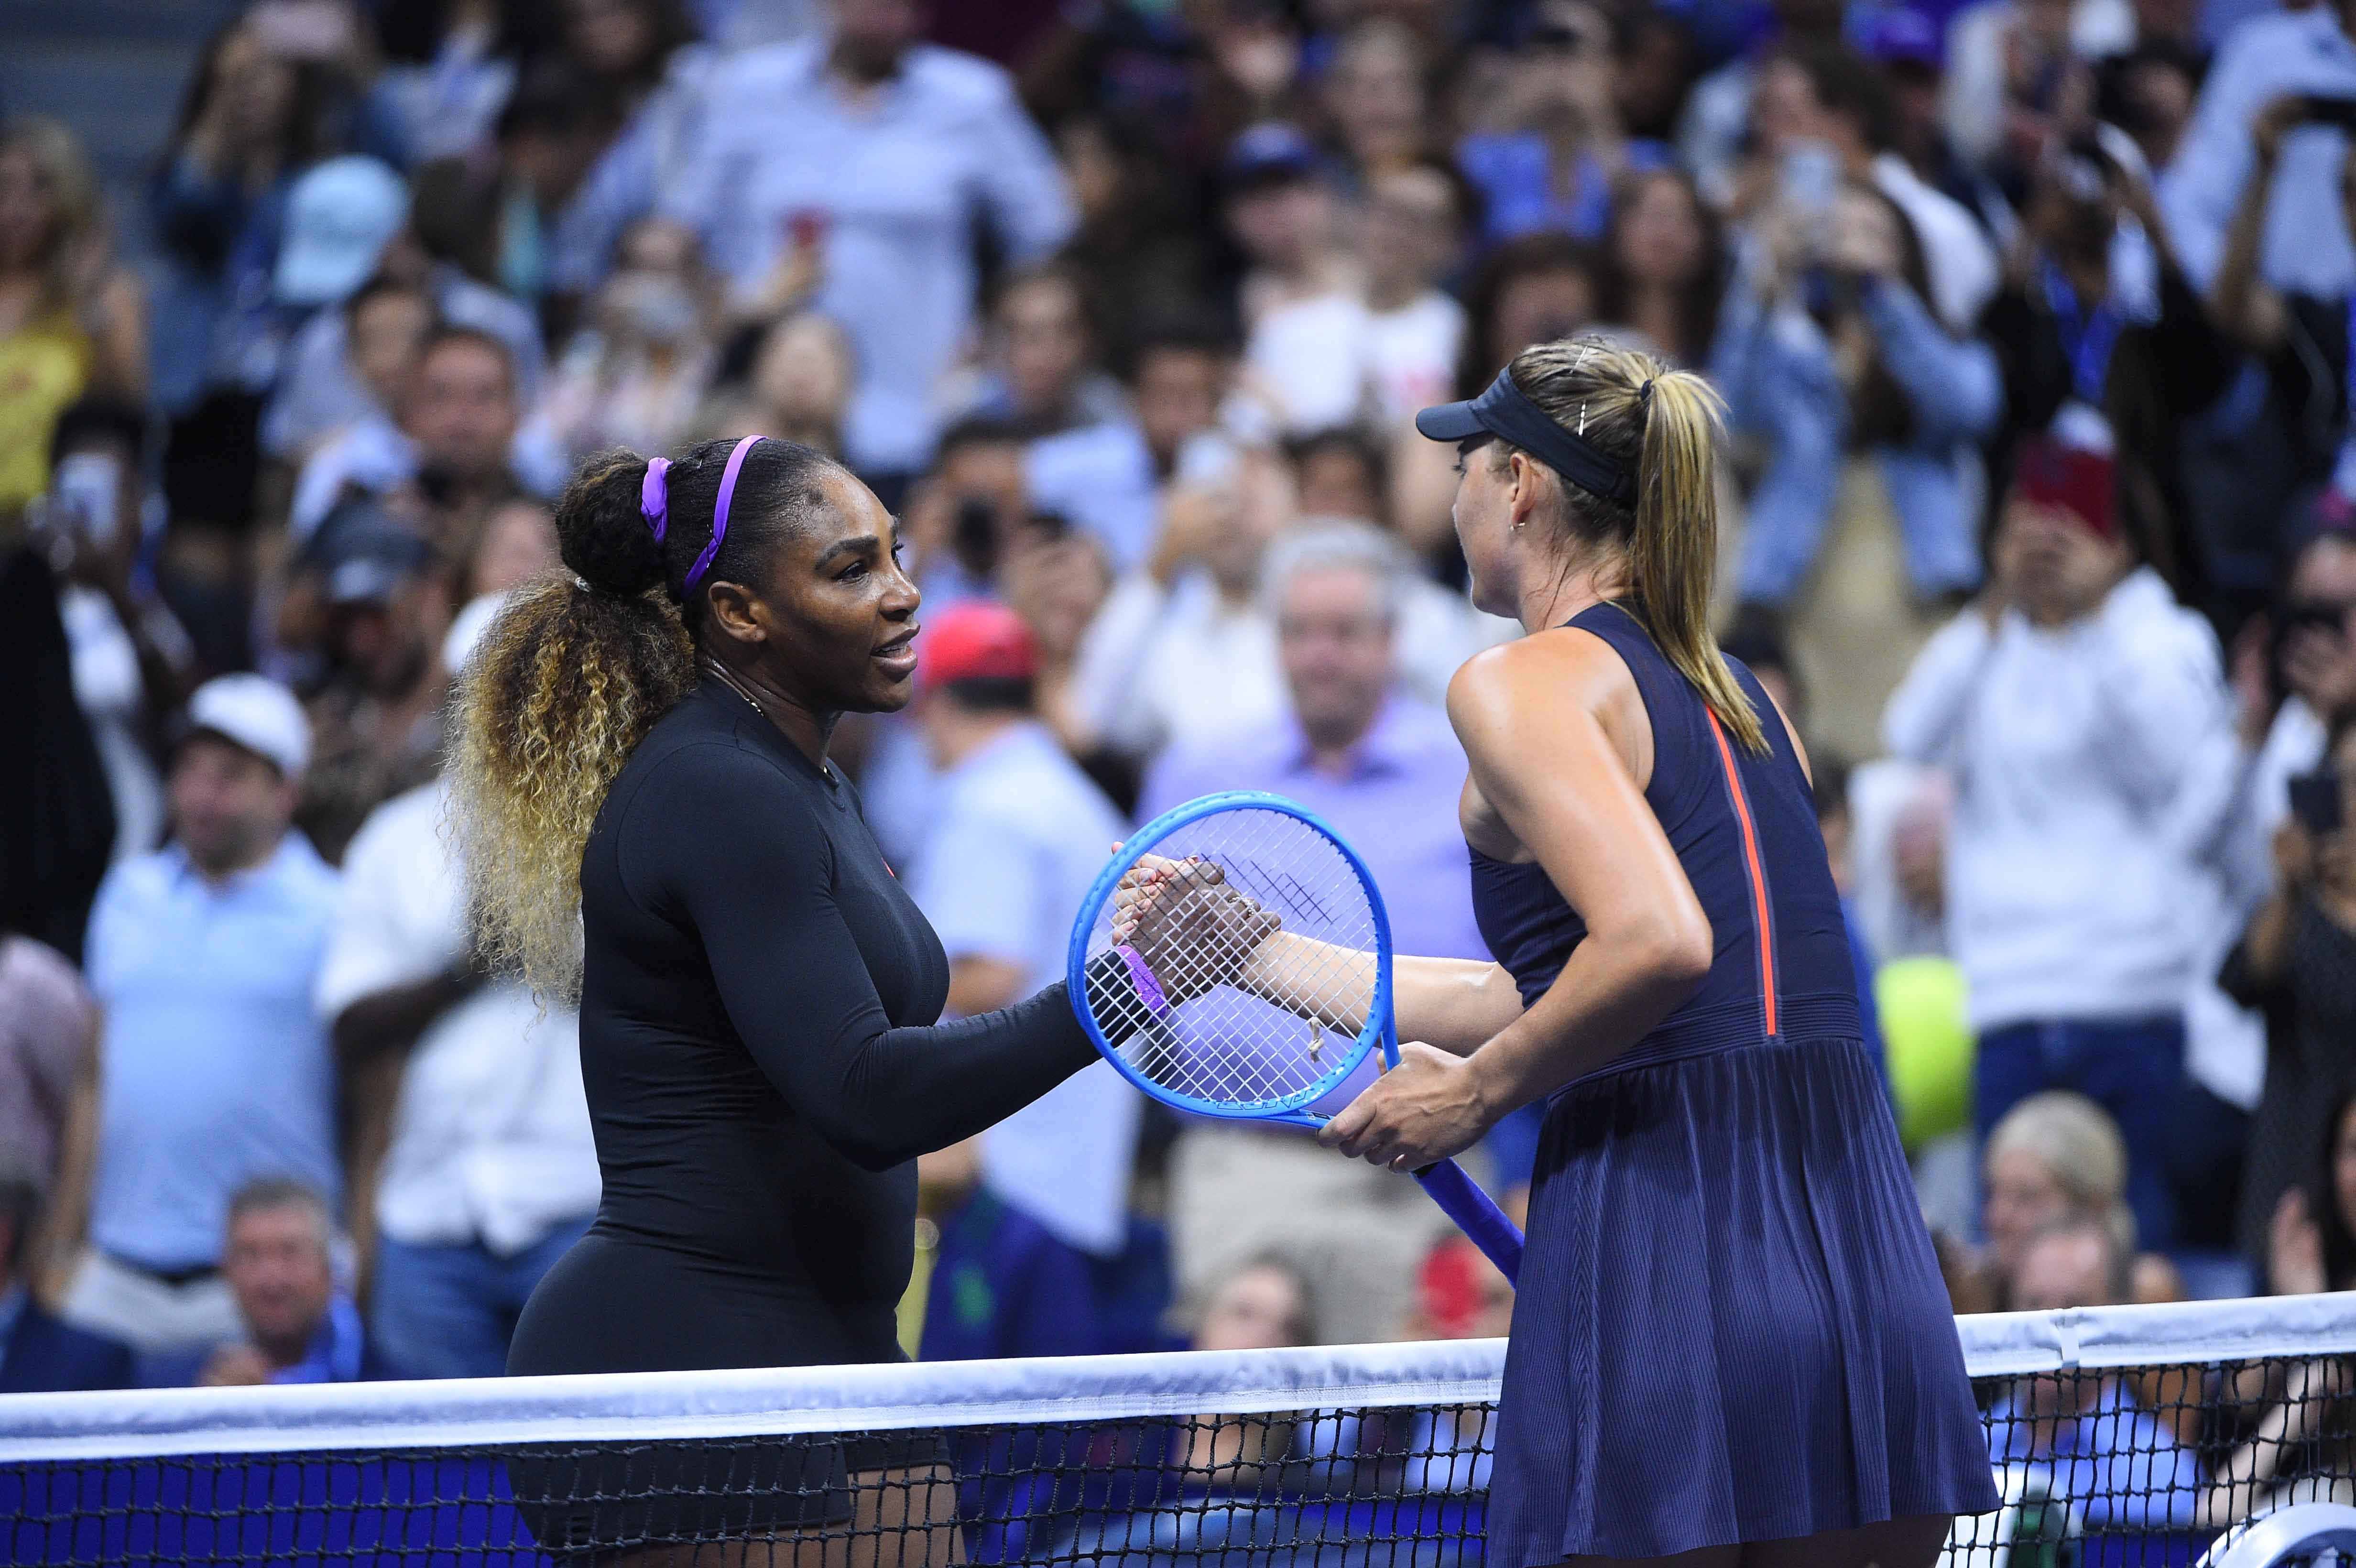 Serena Williams and Maria Sharapova at the US Open 2019